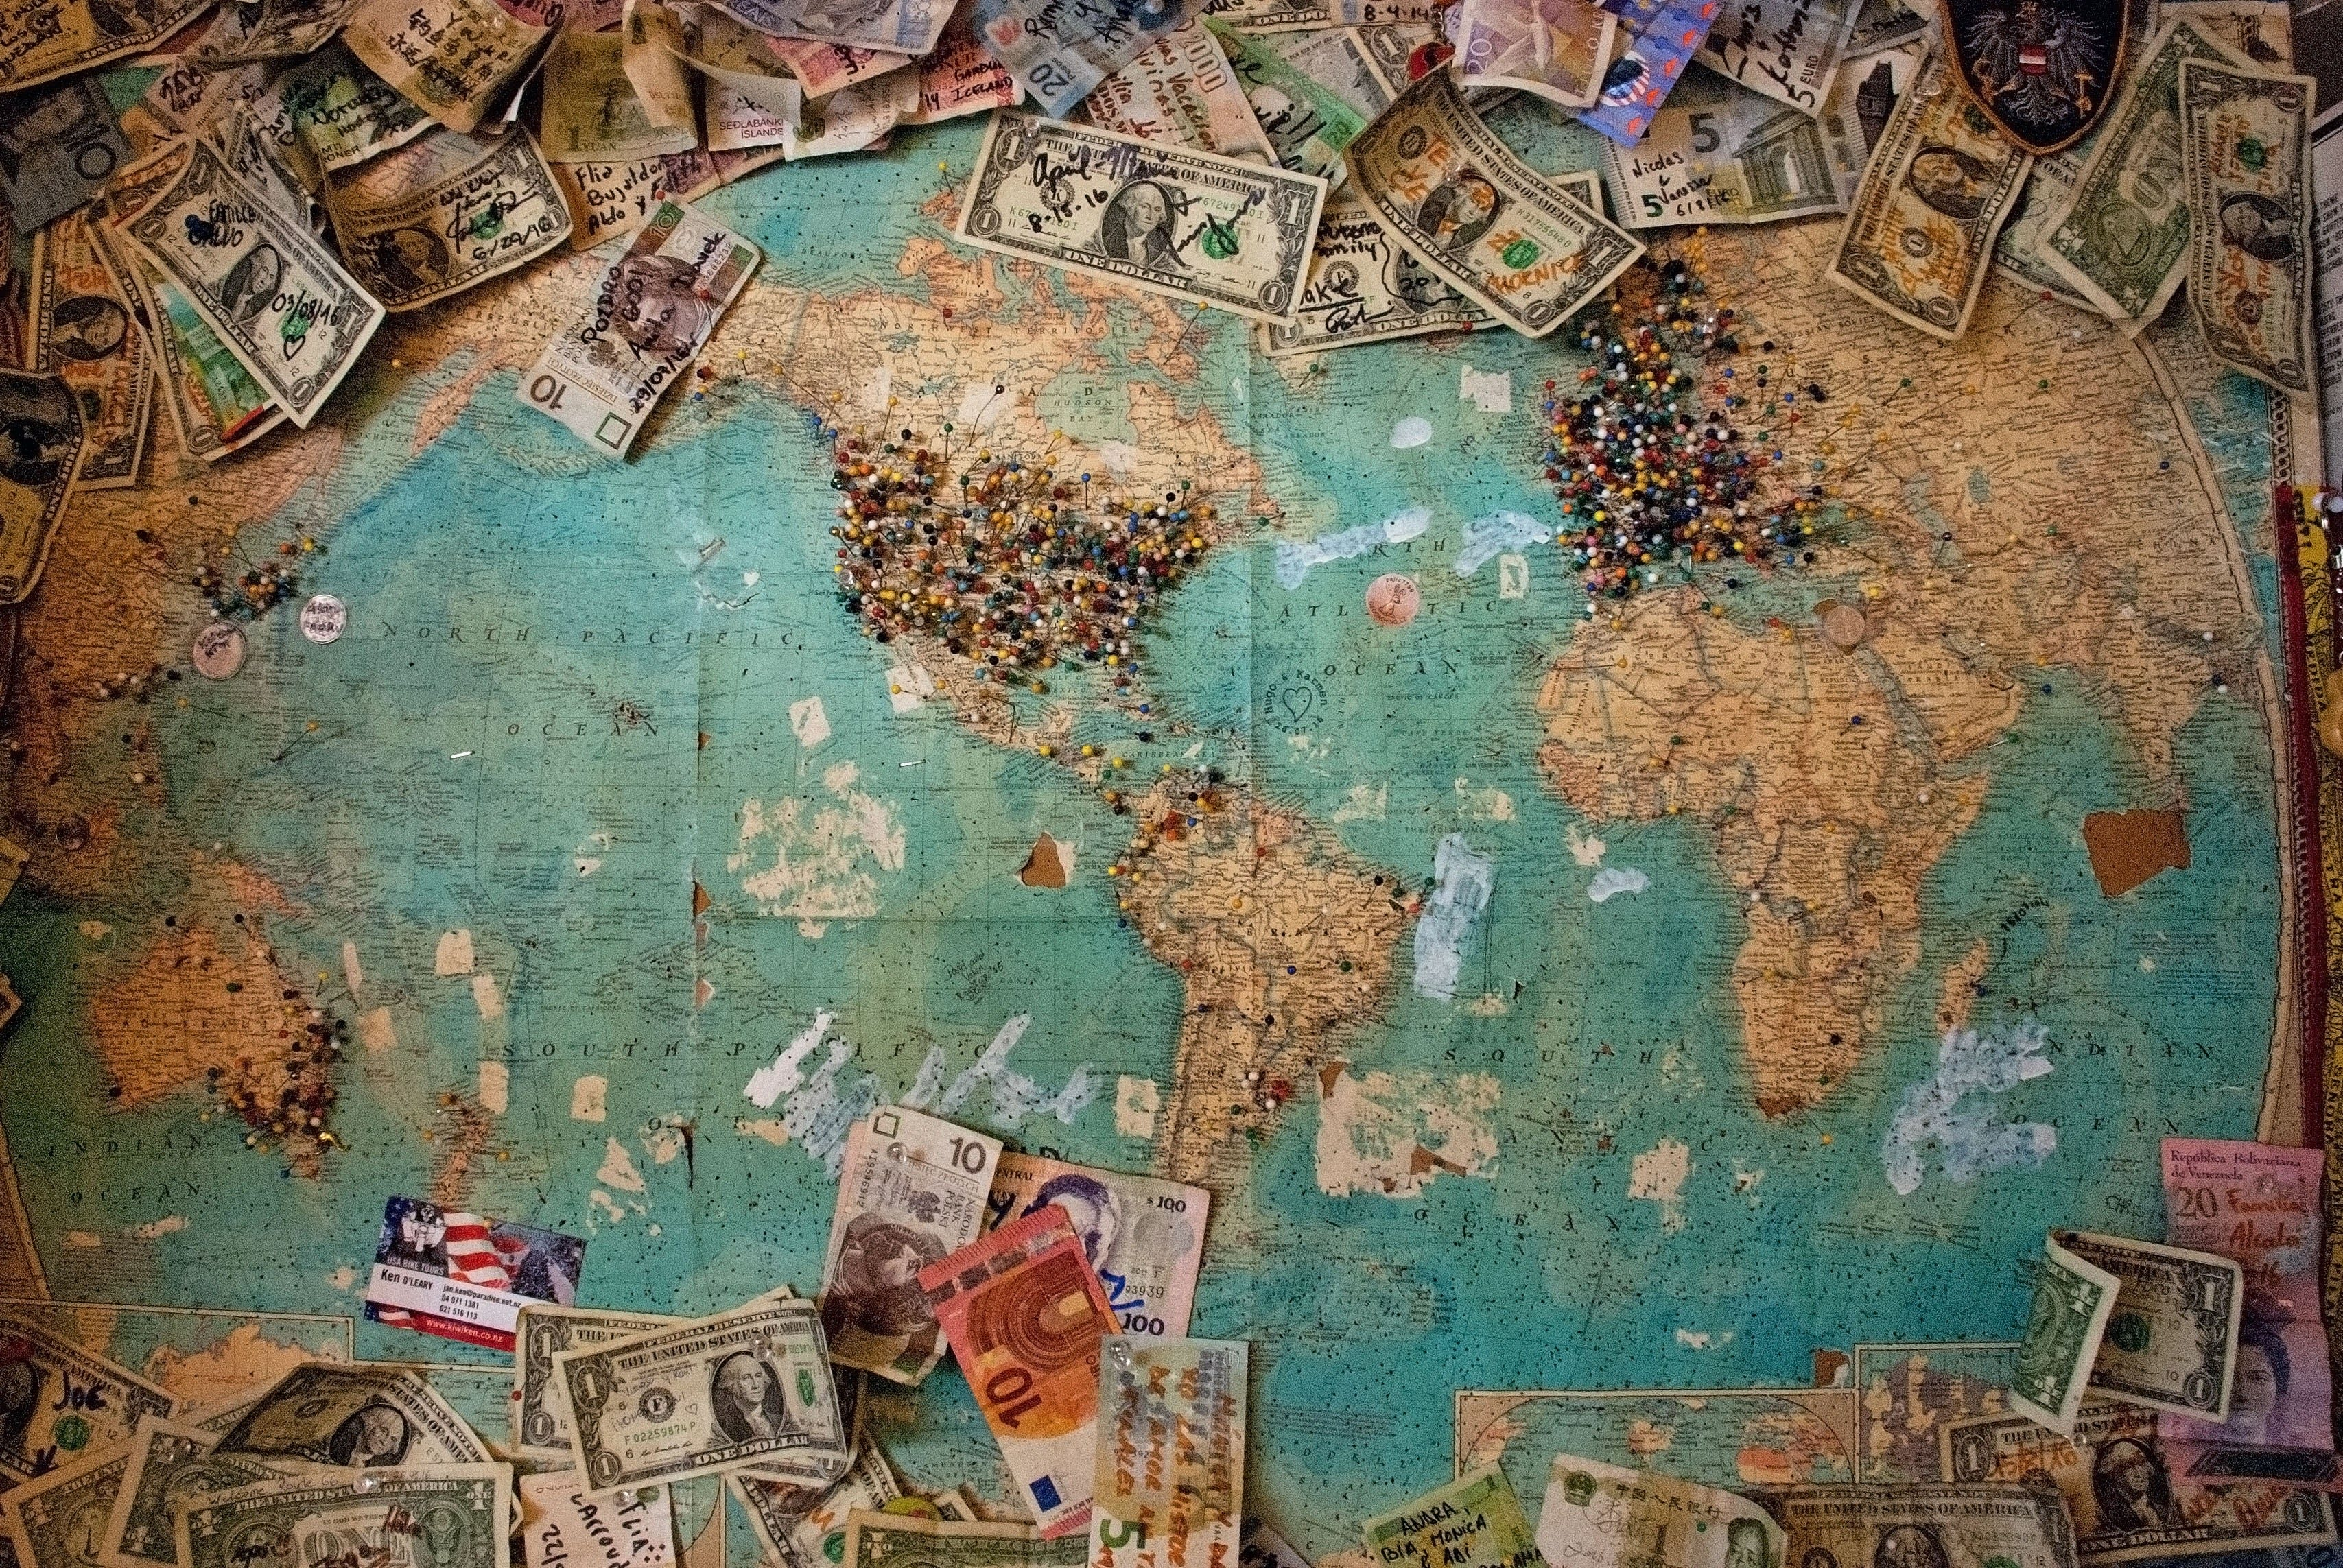 Black Friday 2017: Perspectives from across Awin's global network